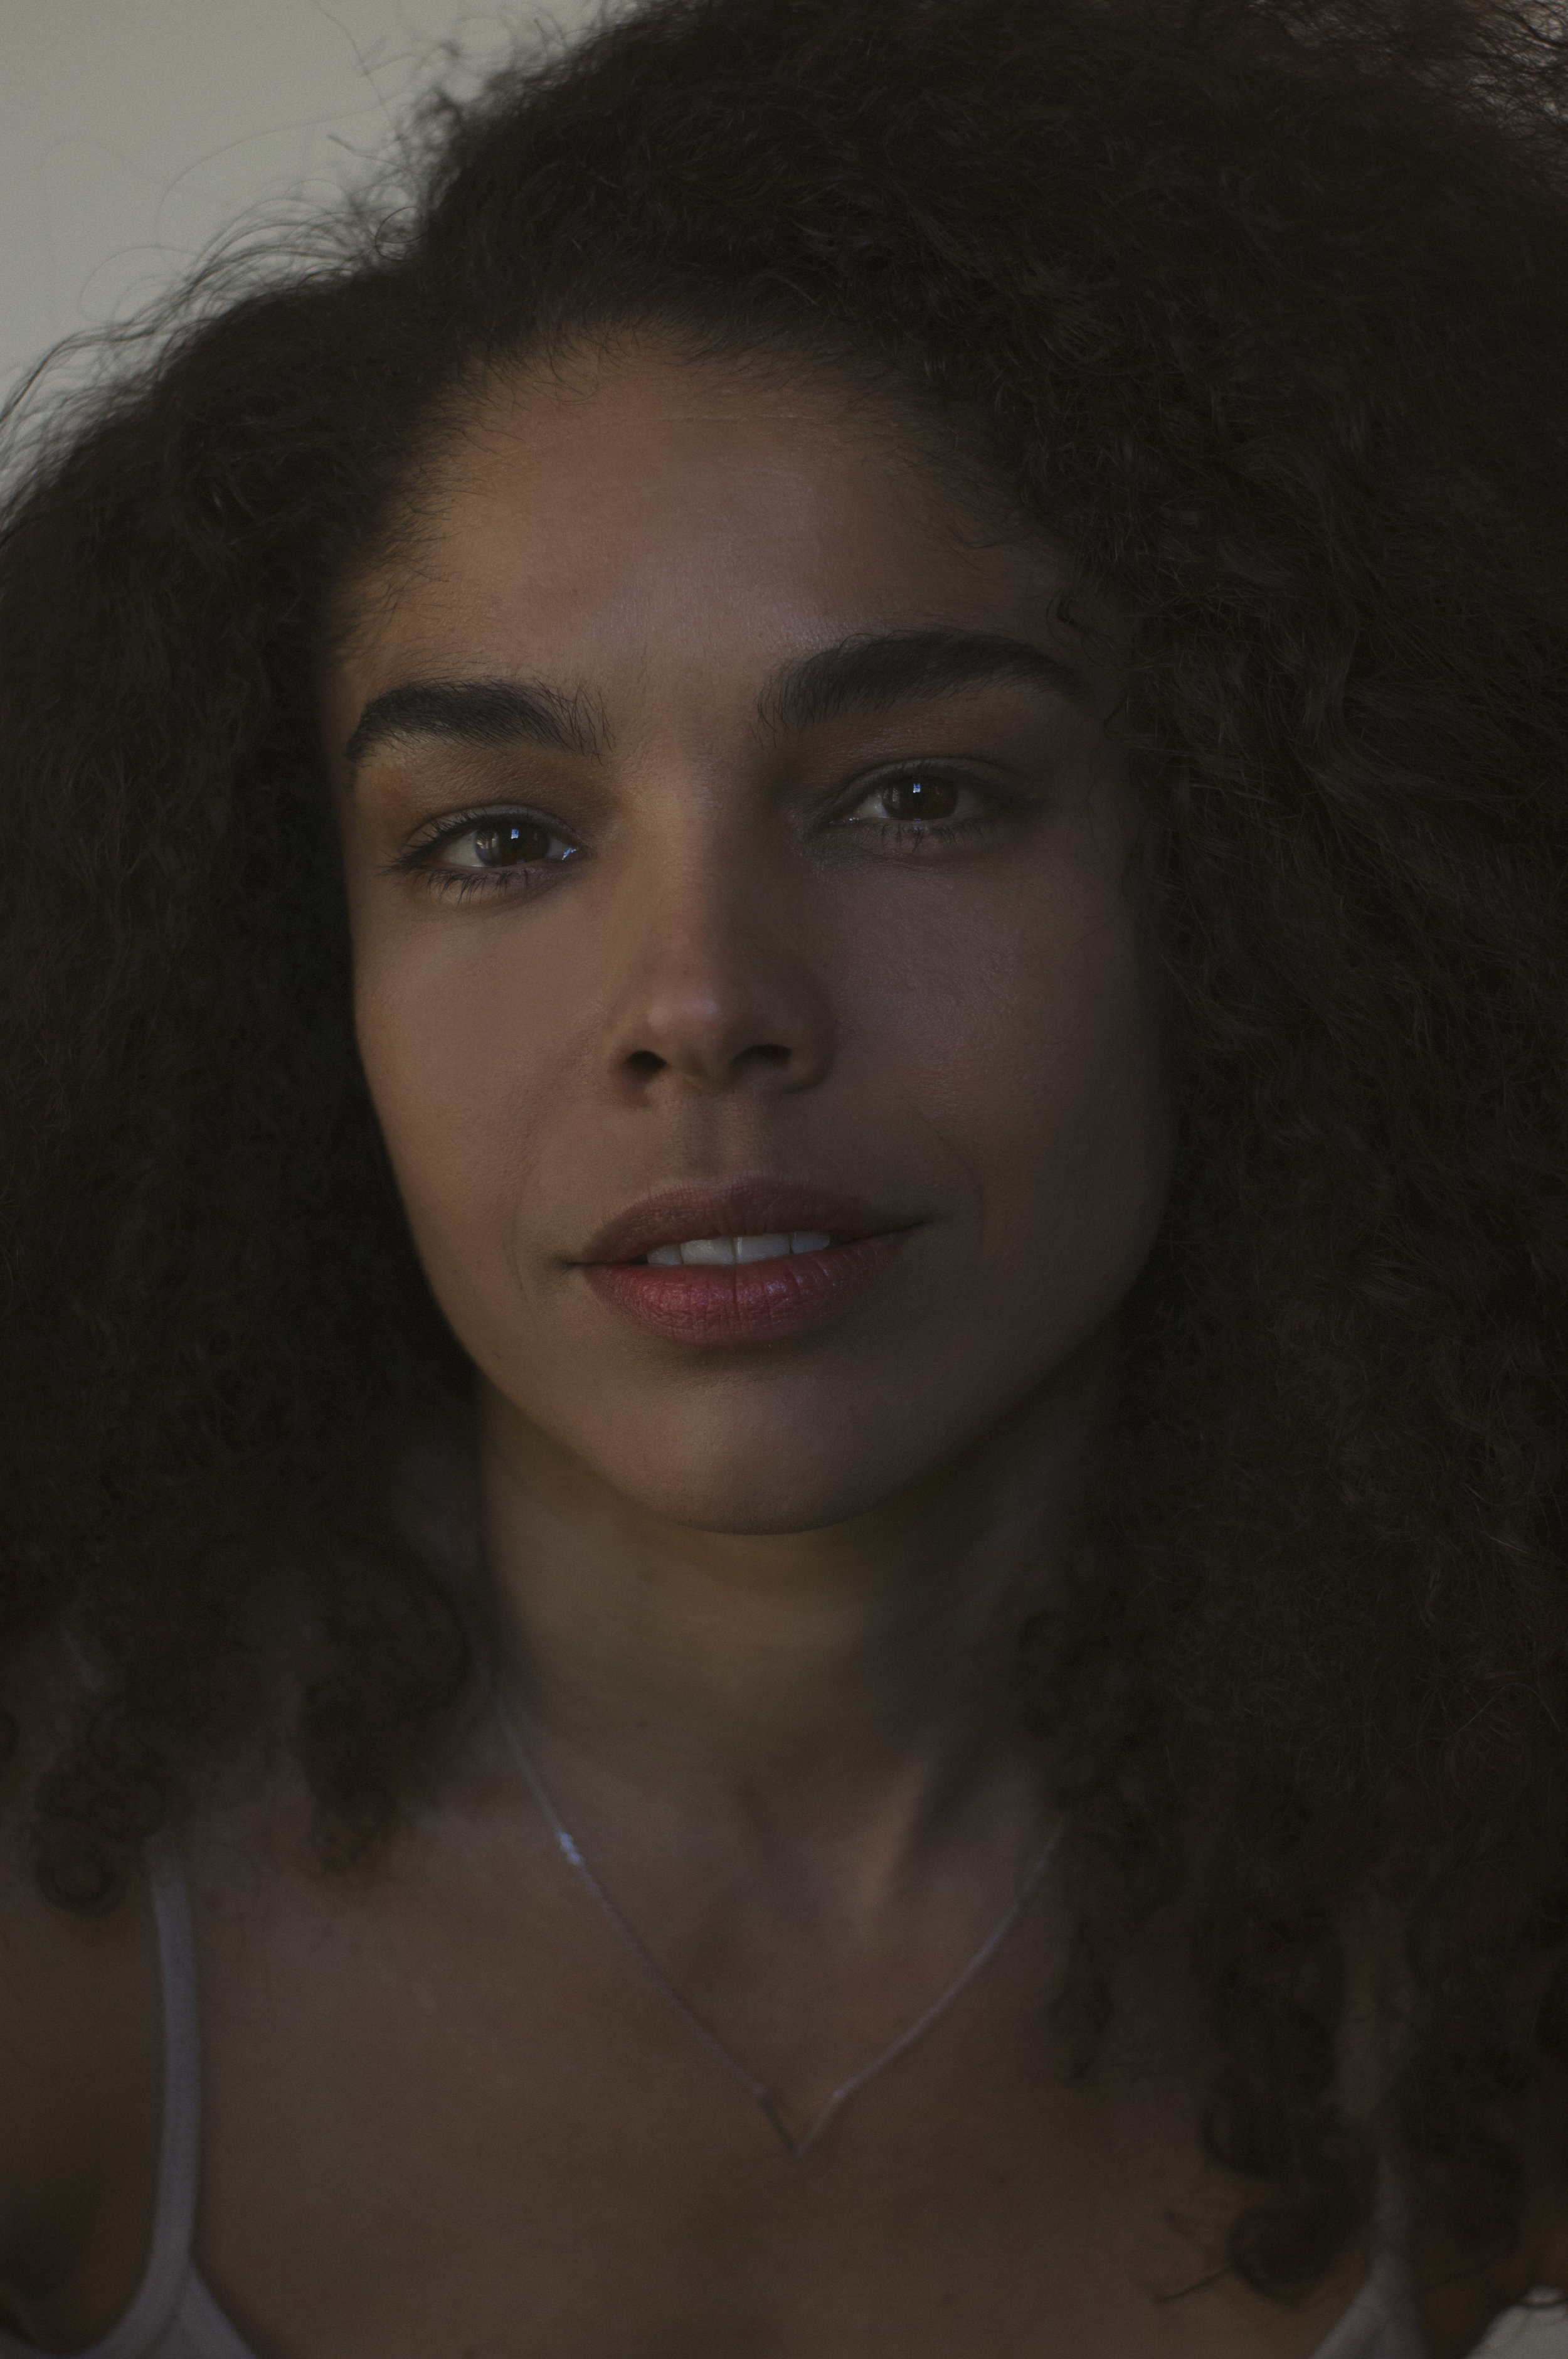 Heirloom Portrait of a Young Woman